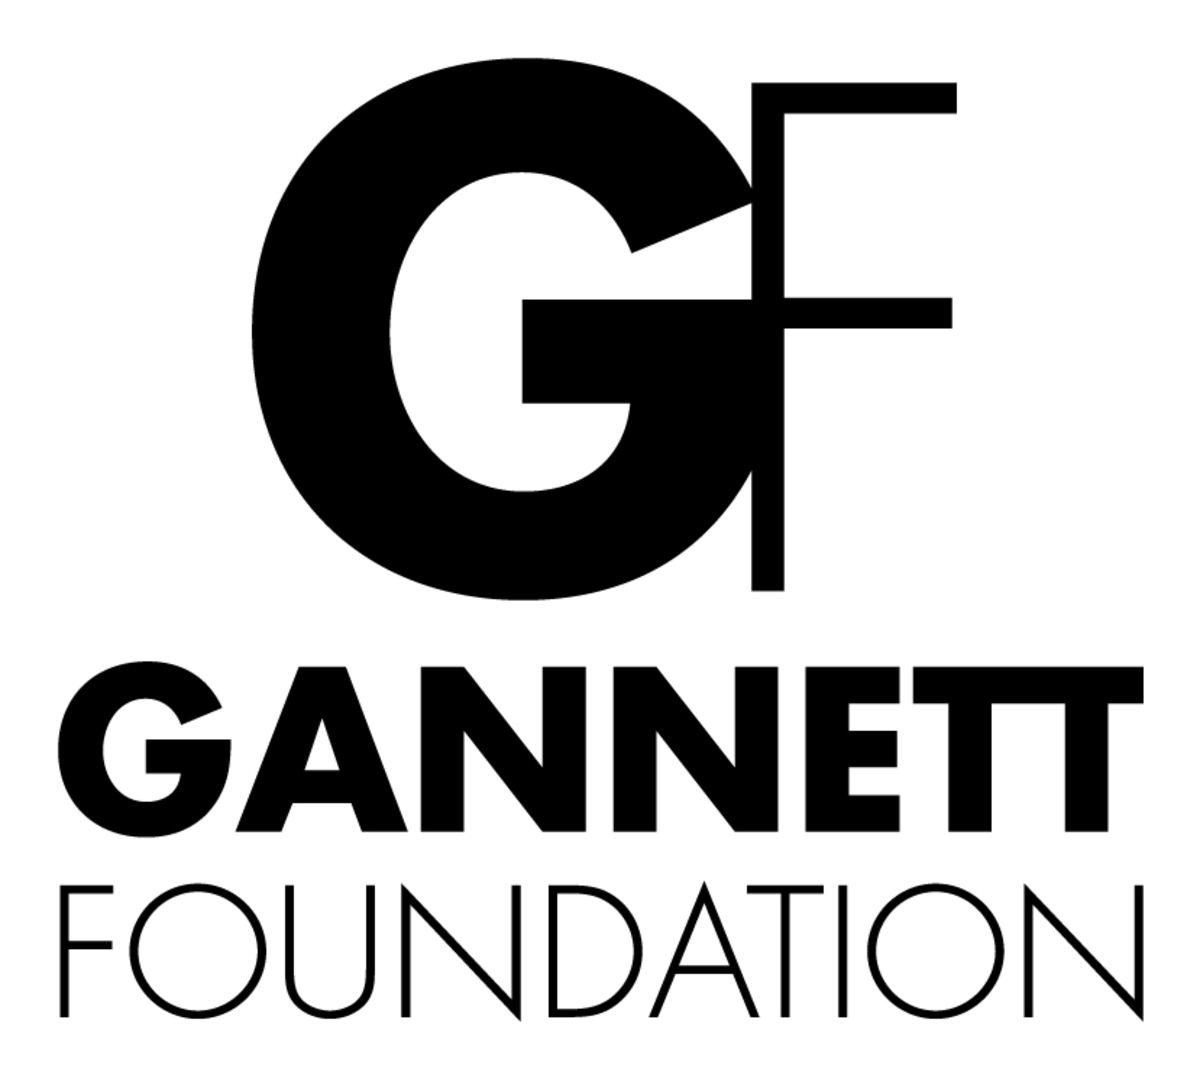 The Gannett Foundation is seeking applications from community projects